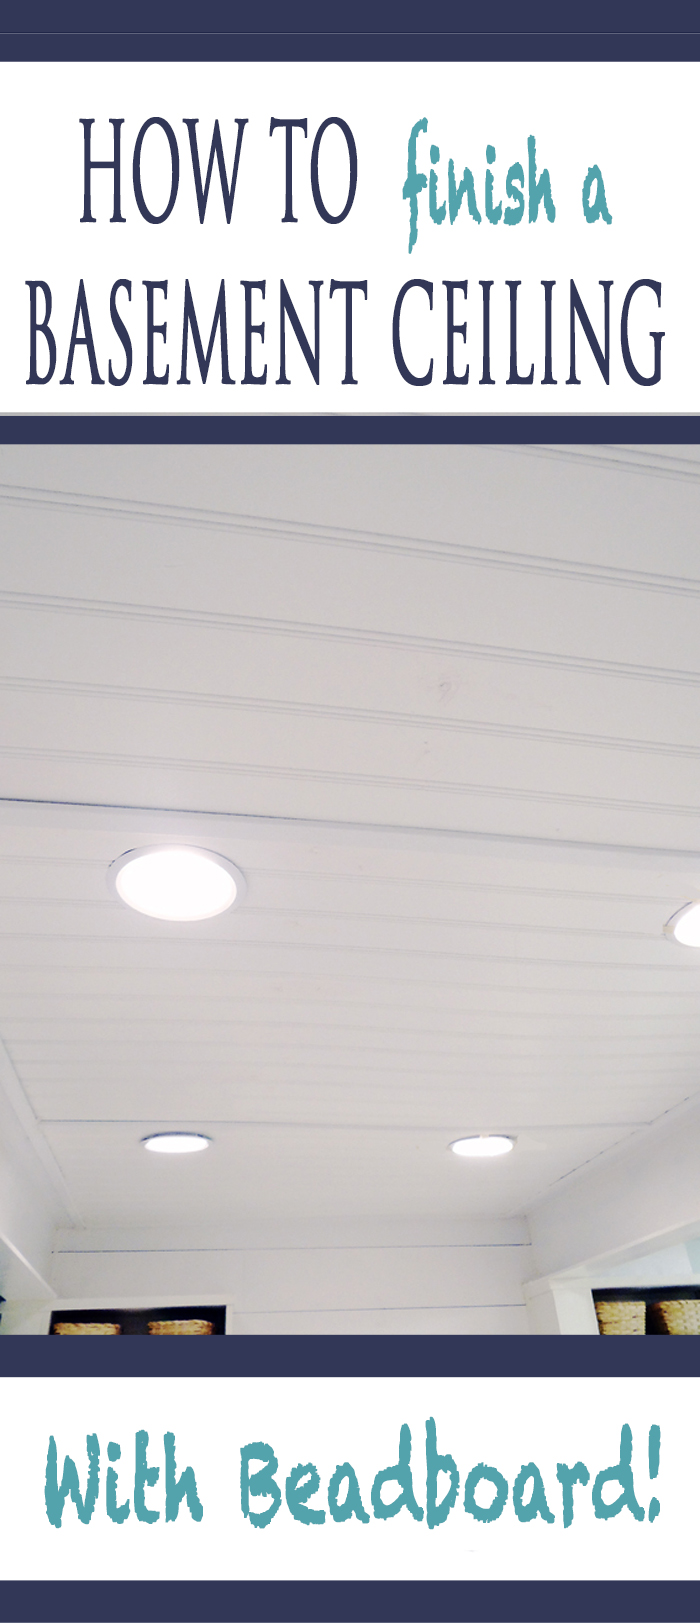 how to finish a basement ceiling with beadboard